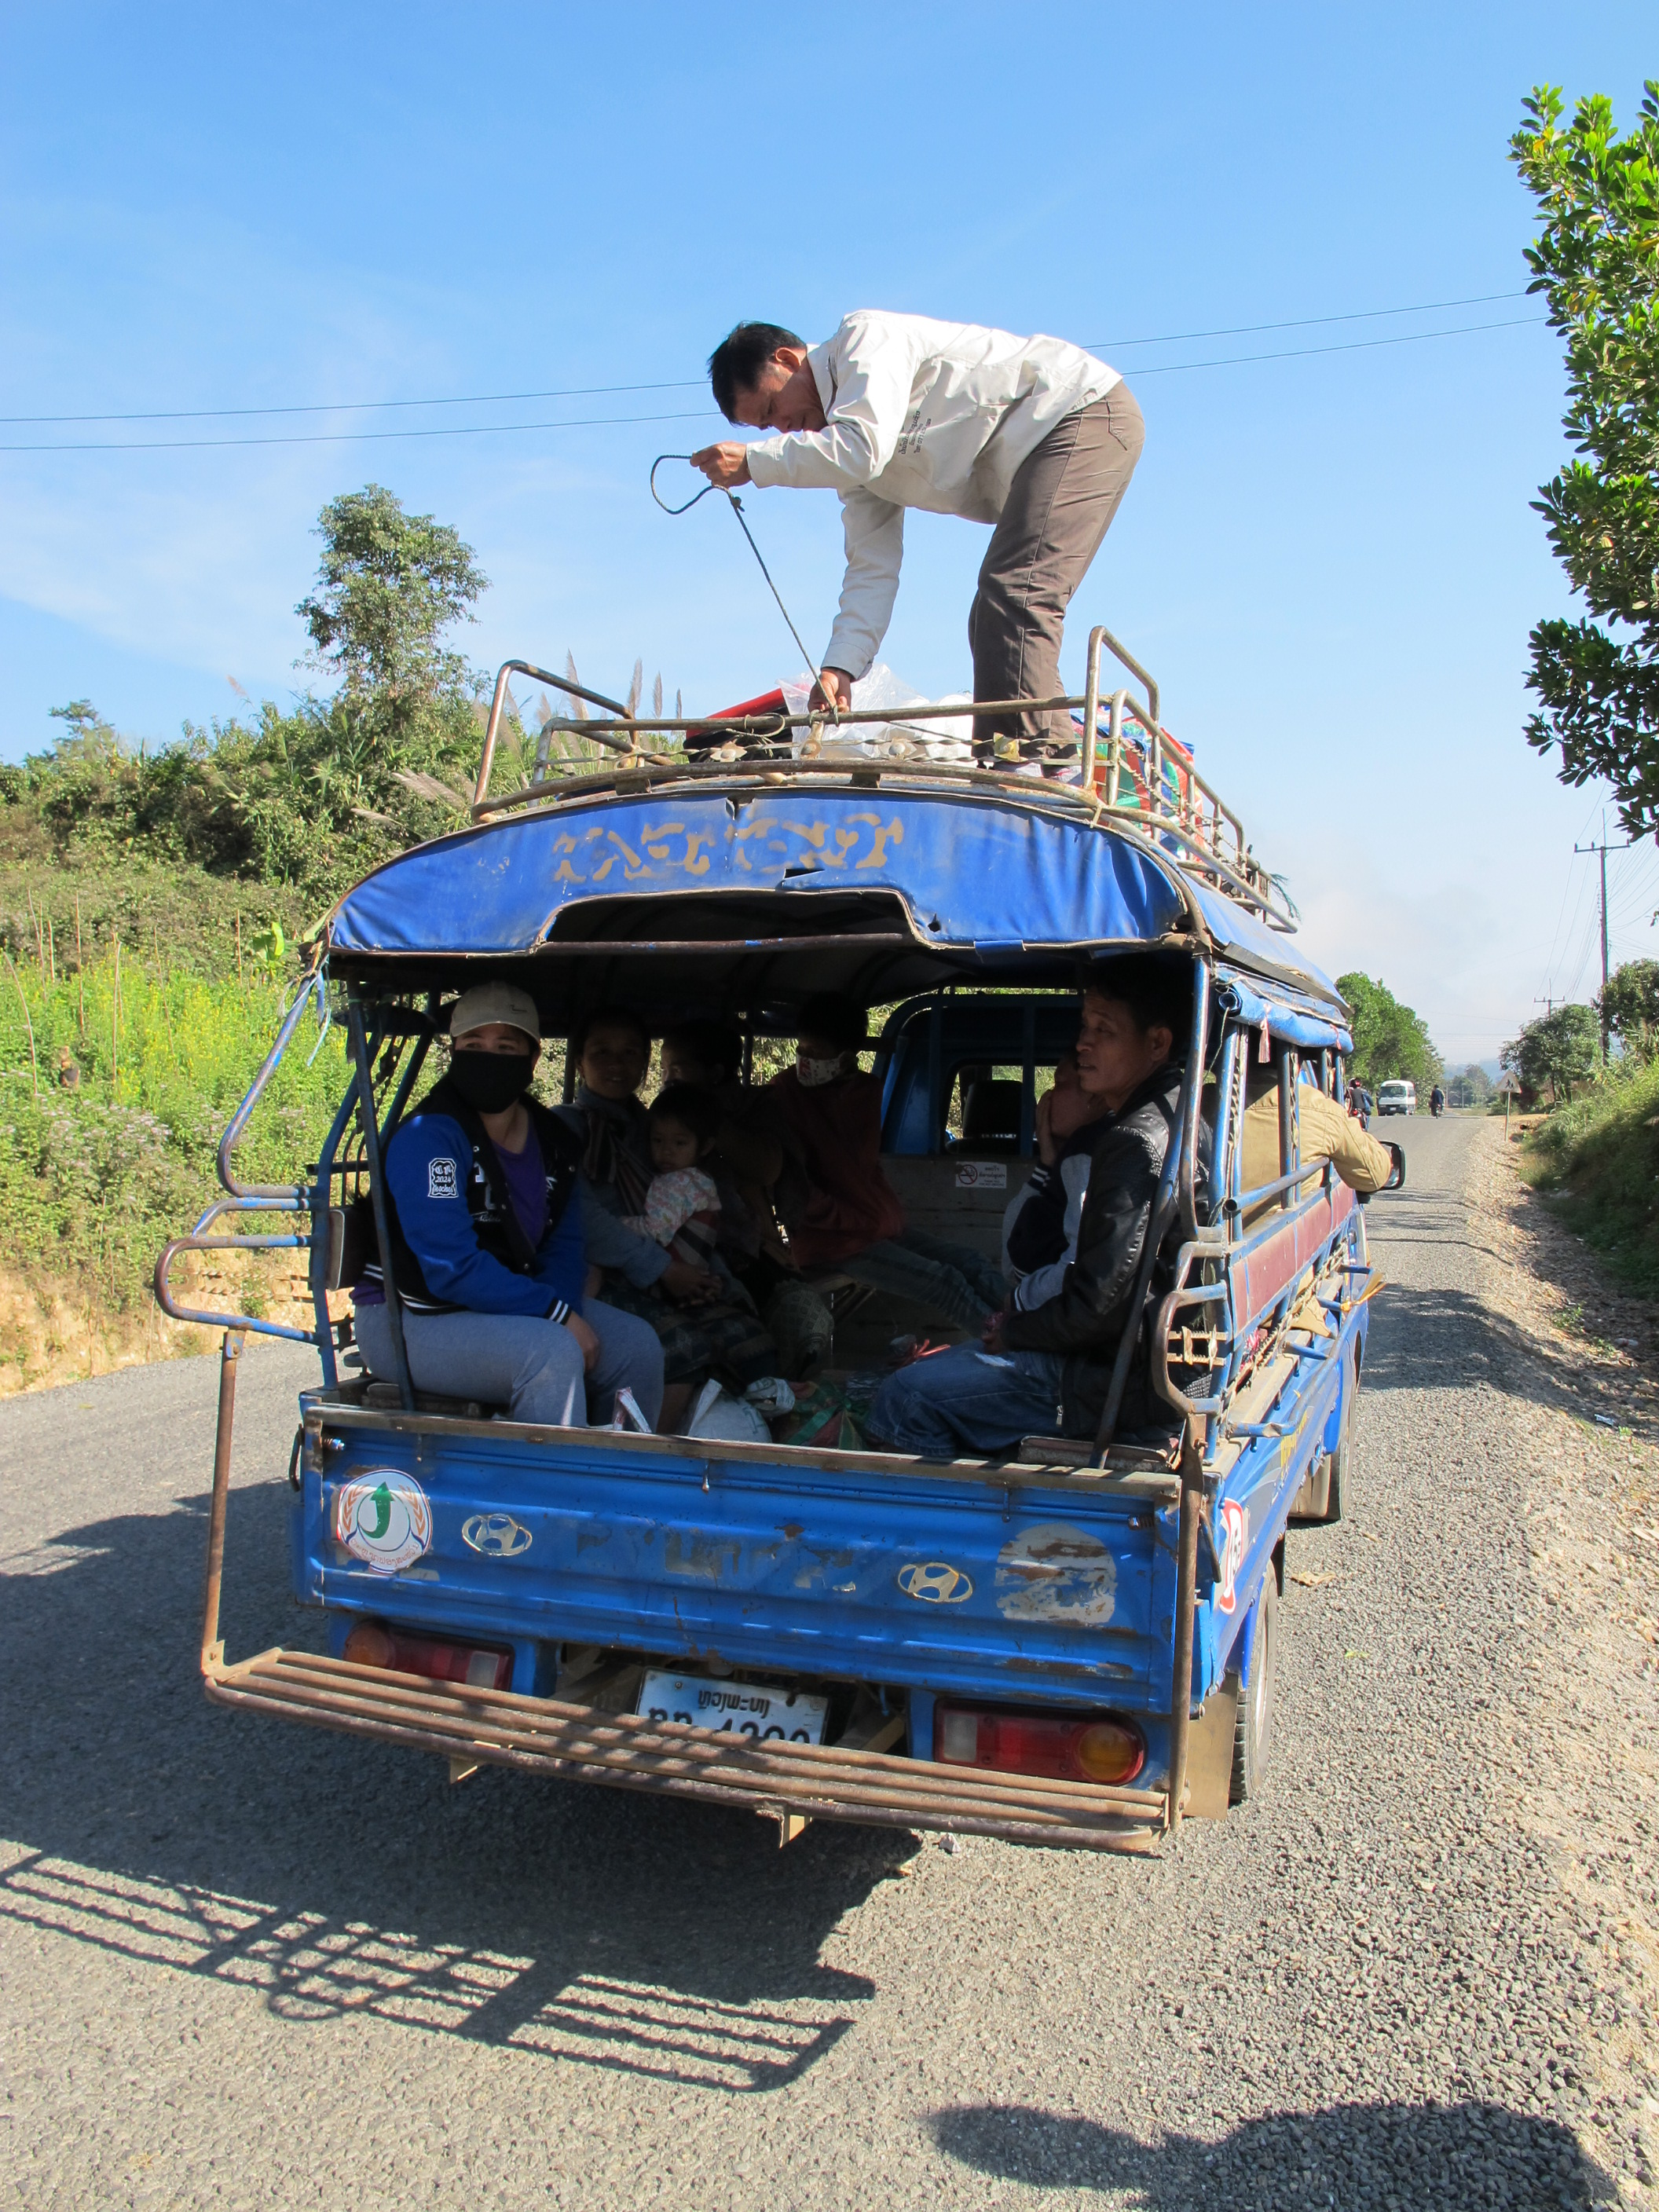 Our transport for the two hour trip to the village